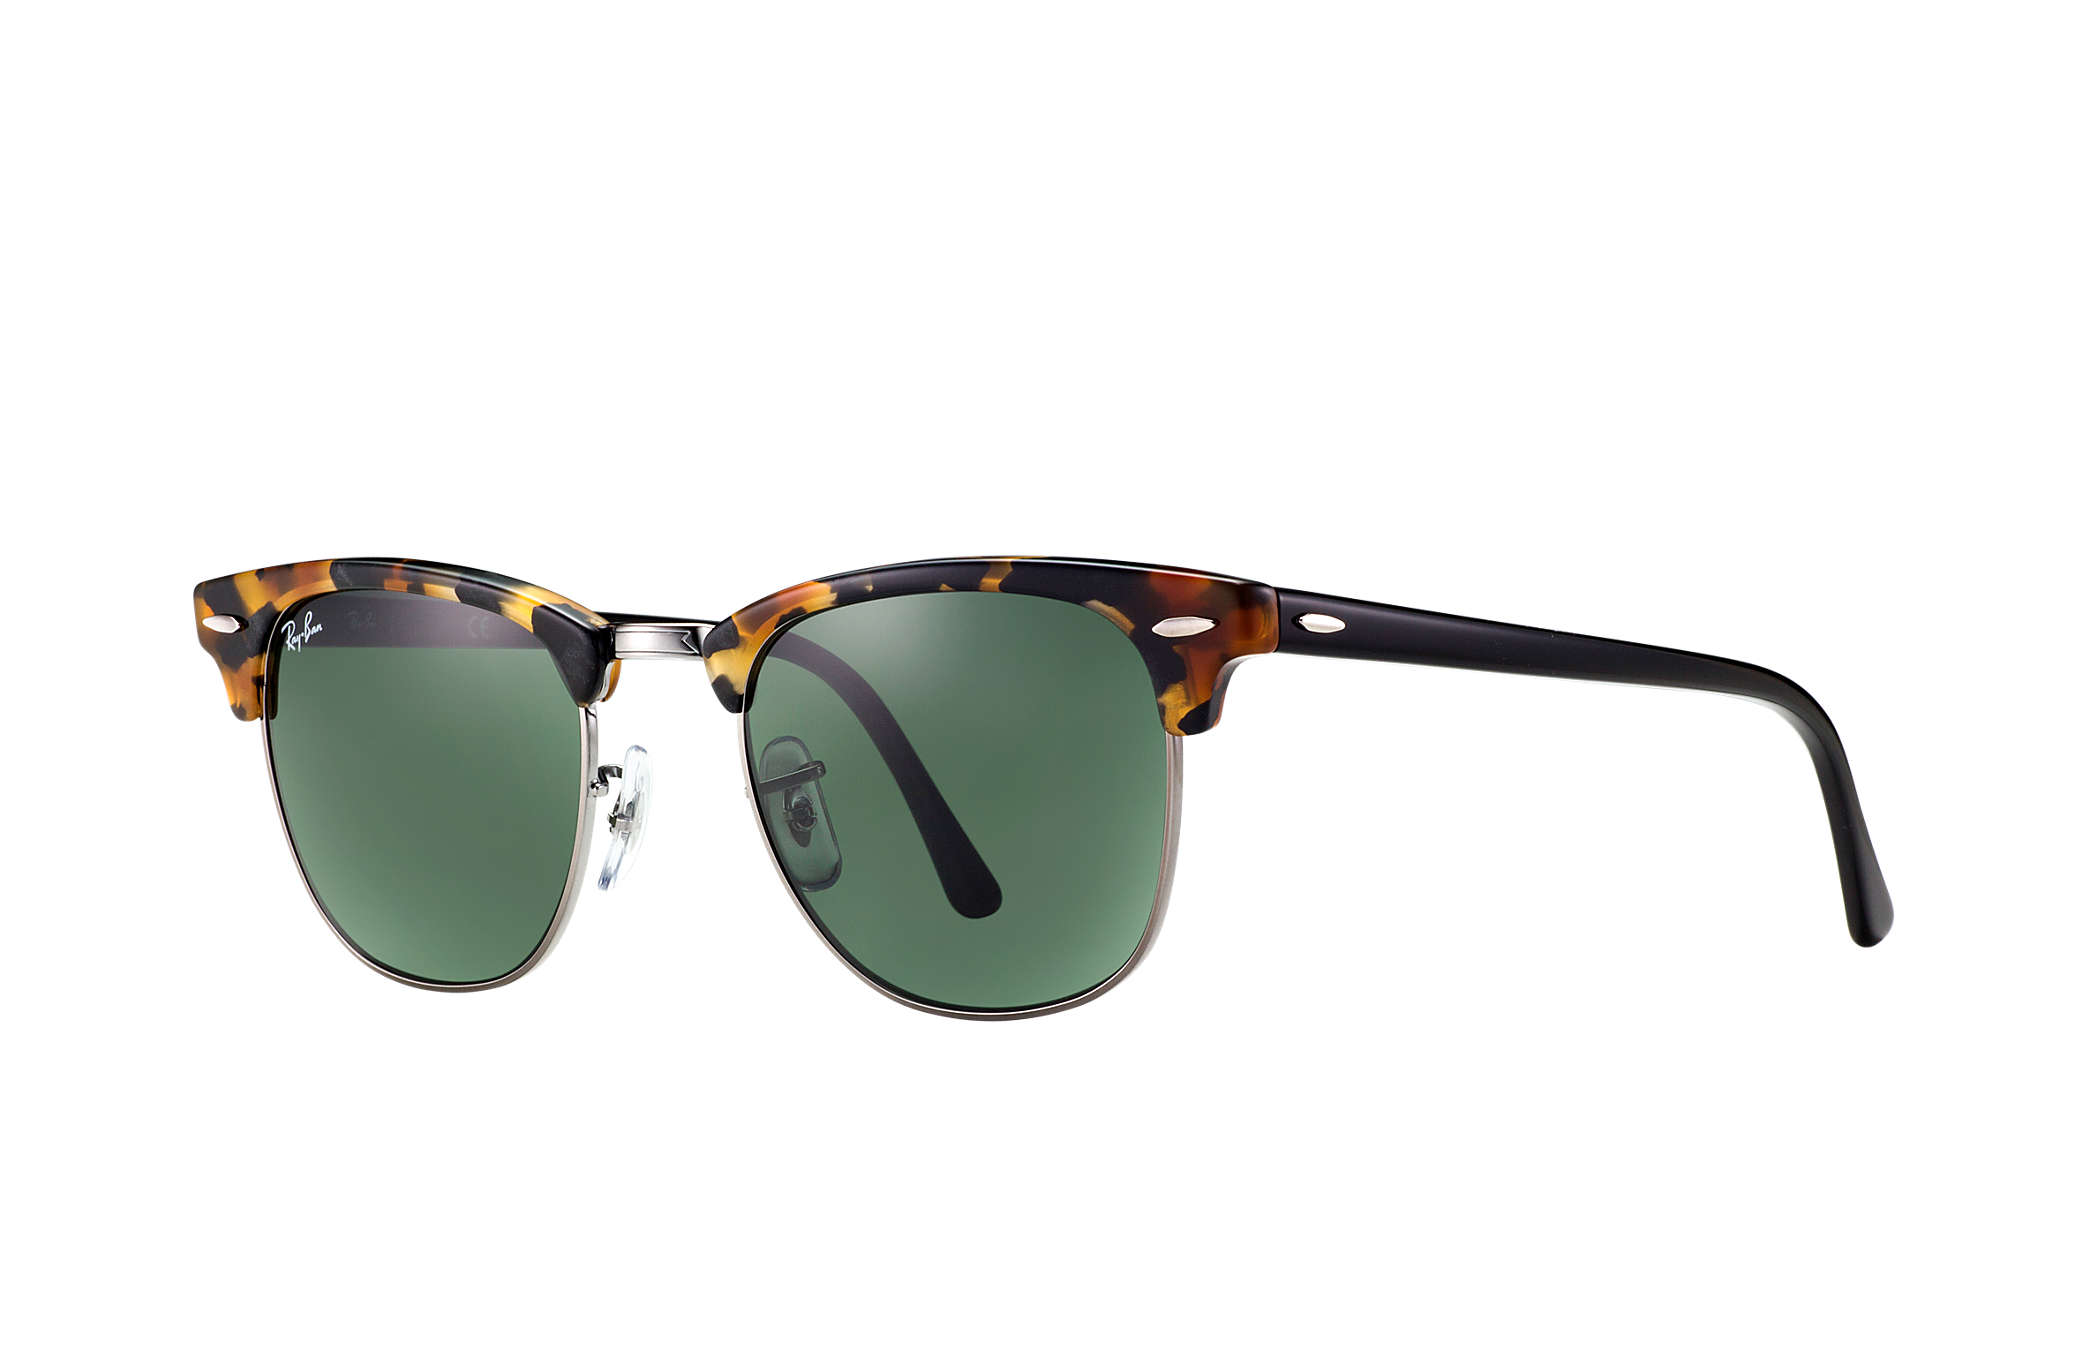 17f3f3616cec6 Ray-Ban Clubmaster Fleck RB3016 Tortoise - Acetate - Green Lenses ...